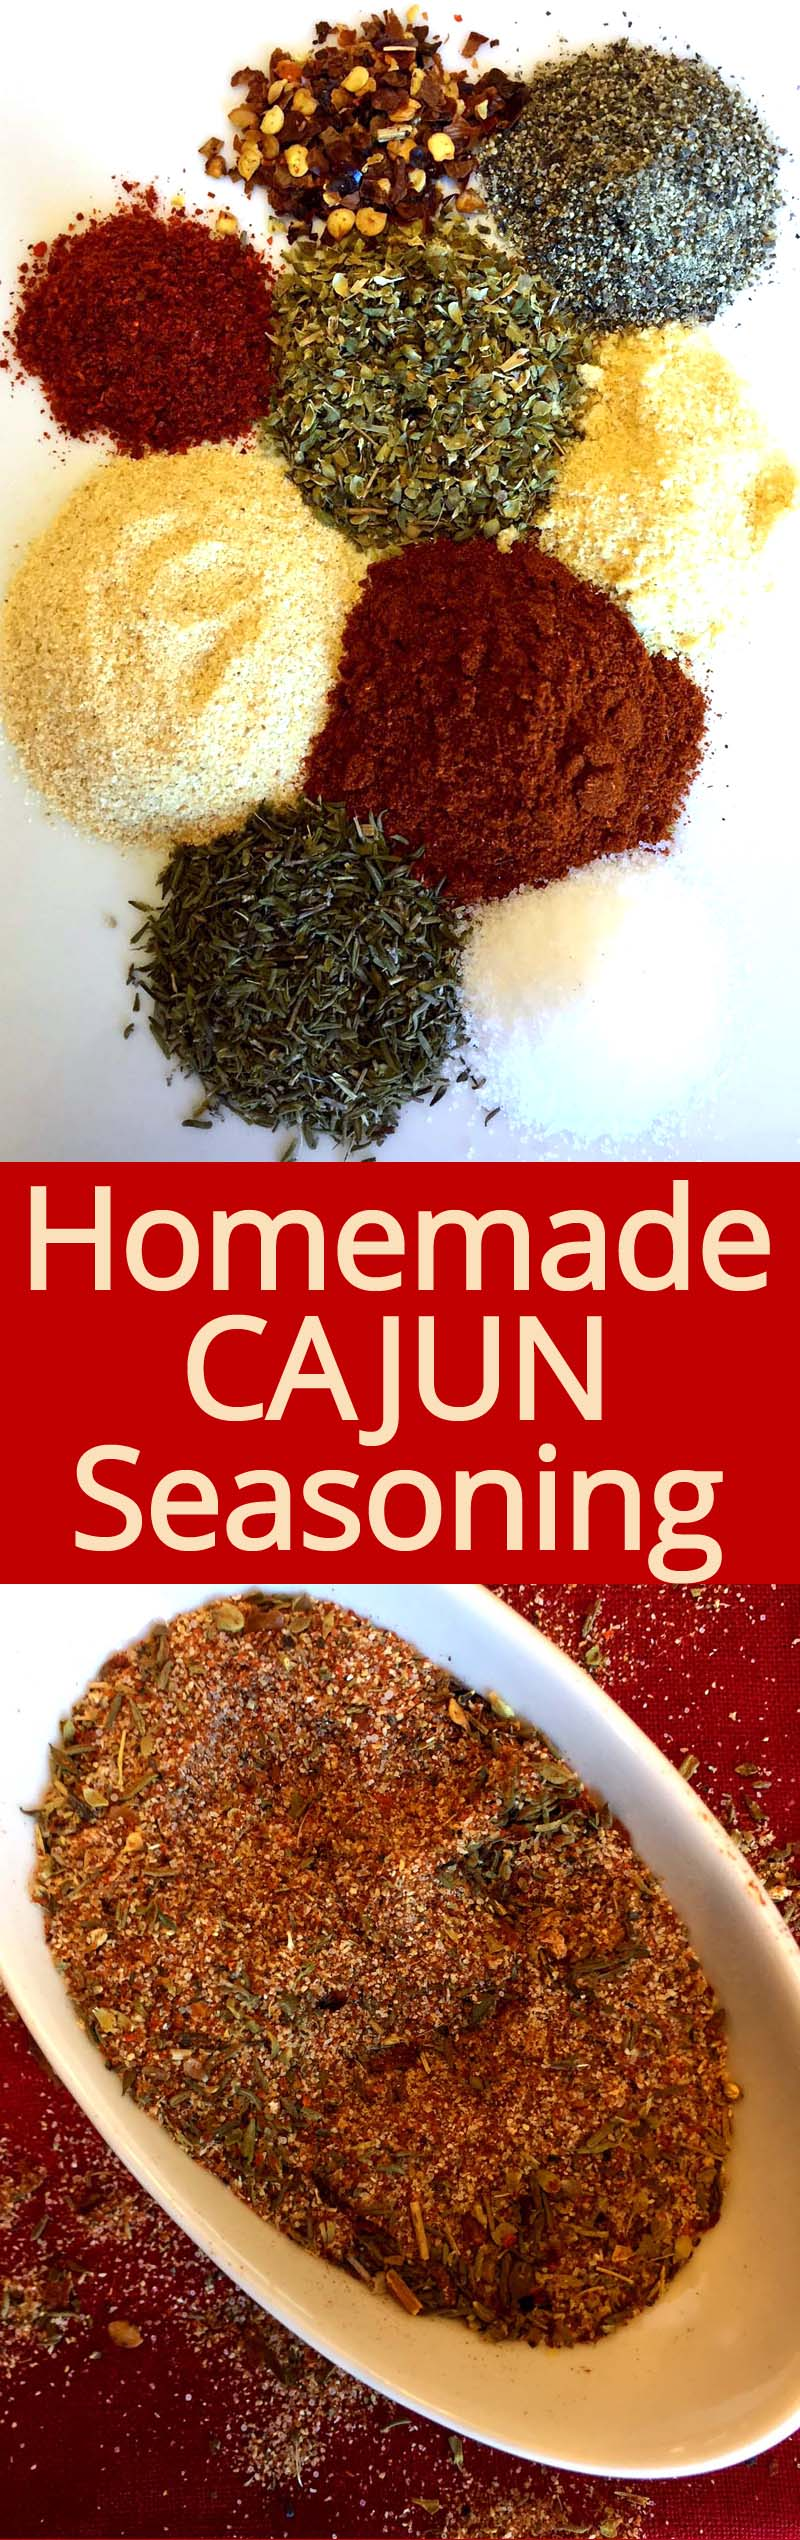 This homemade Cajun seasoning spice mix is amazing! So easy to make and so much more flavorful than store-bought! YUM YUM I love this spice!